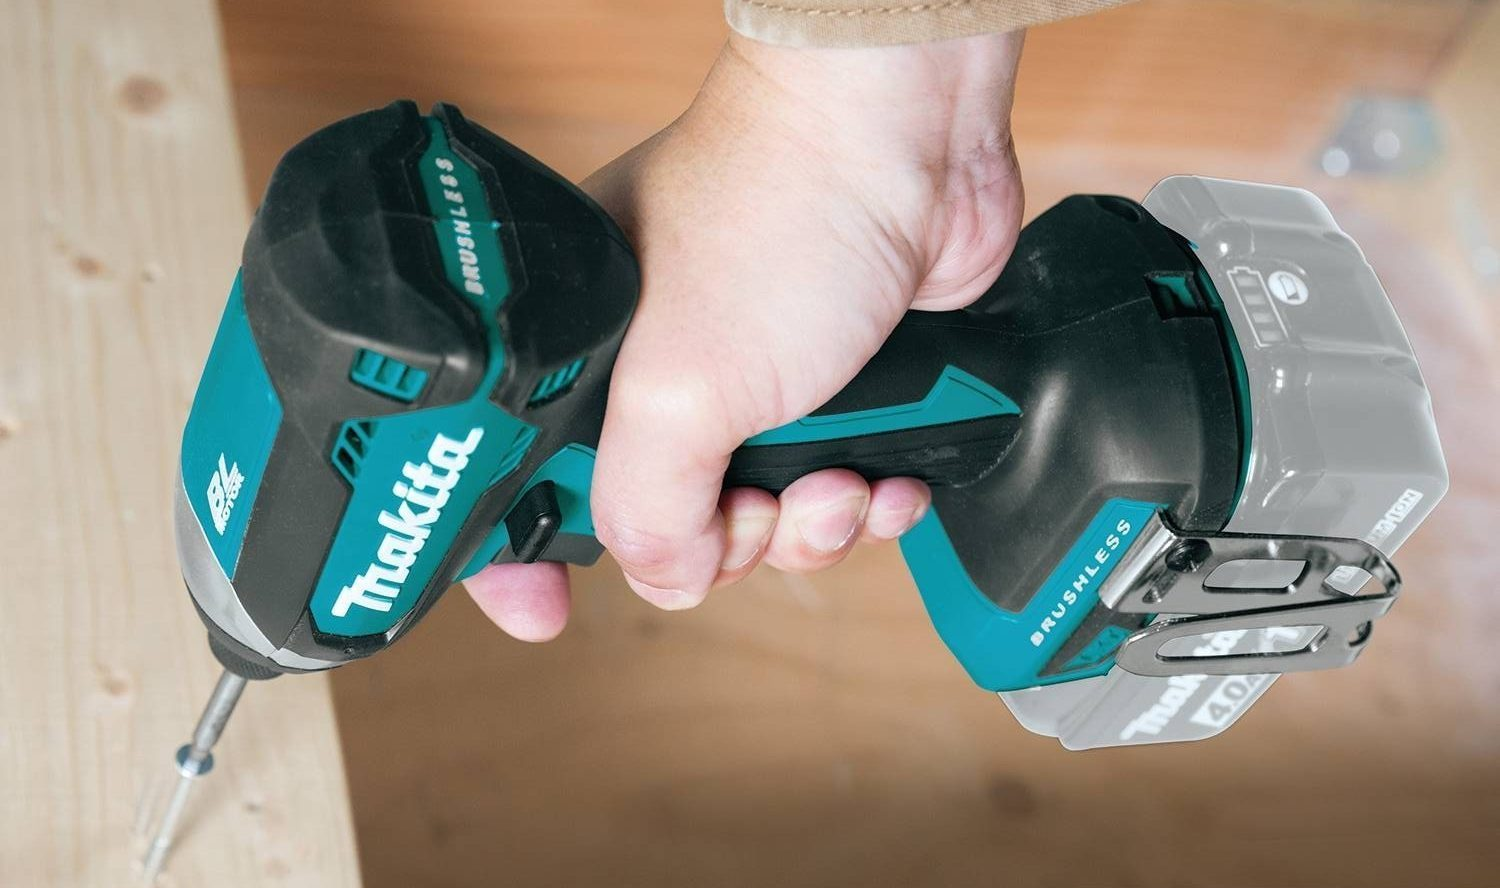 The cordless impact wrench versus the electric impact driver